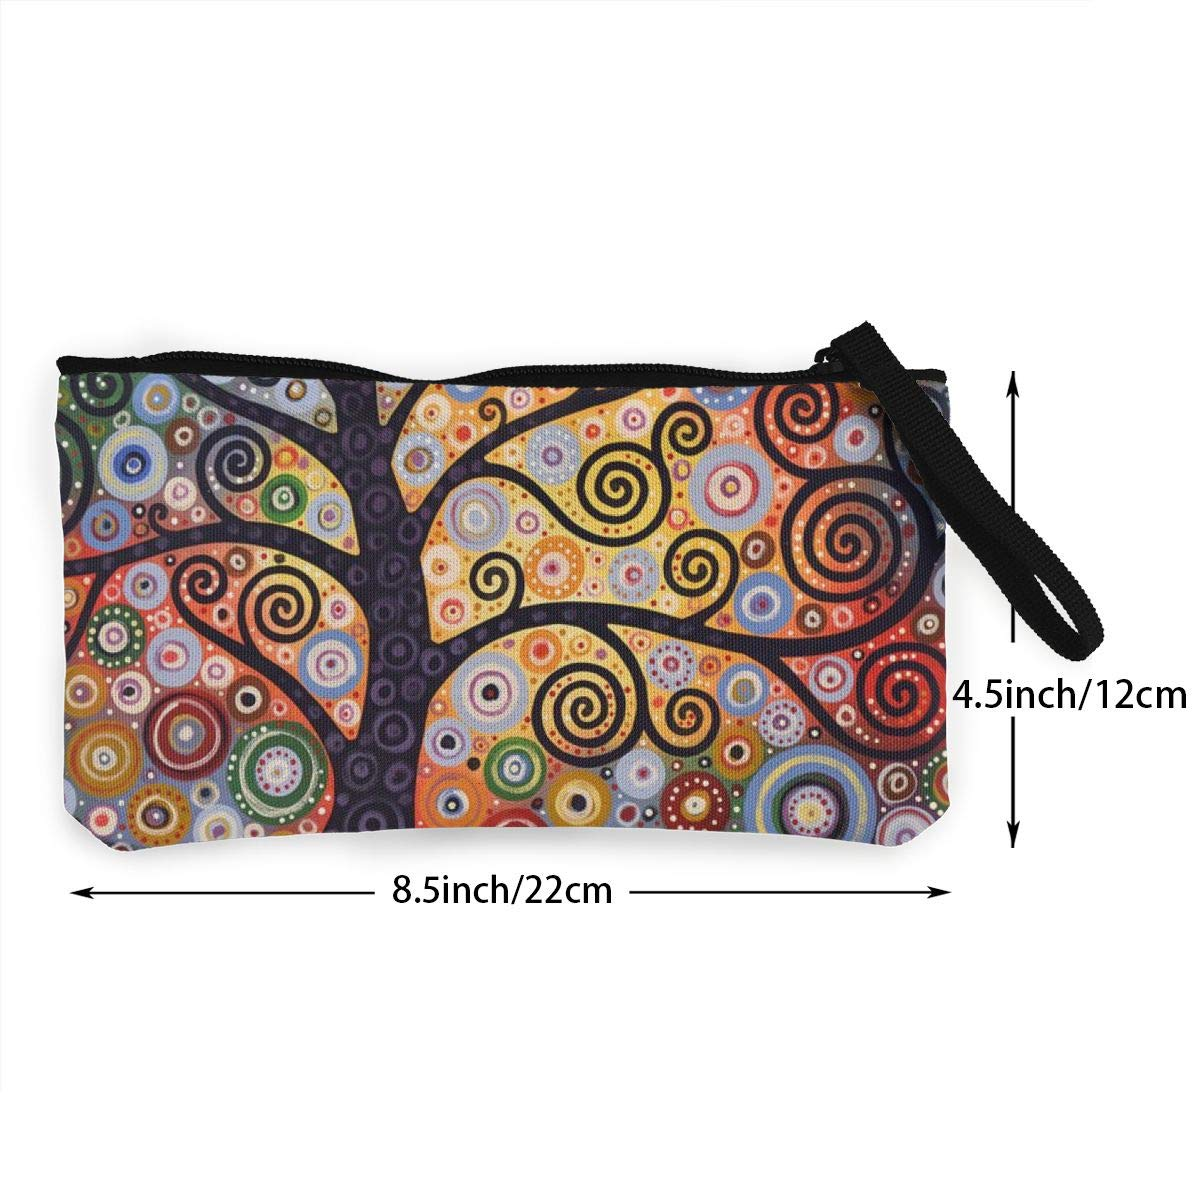 Coin Pouch Beautiful Art Tree Canvas Coin Purse Cellphone Card Bag With Handle And Zipper